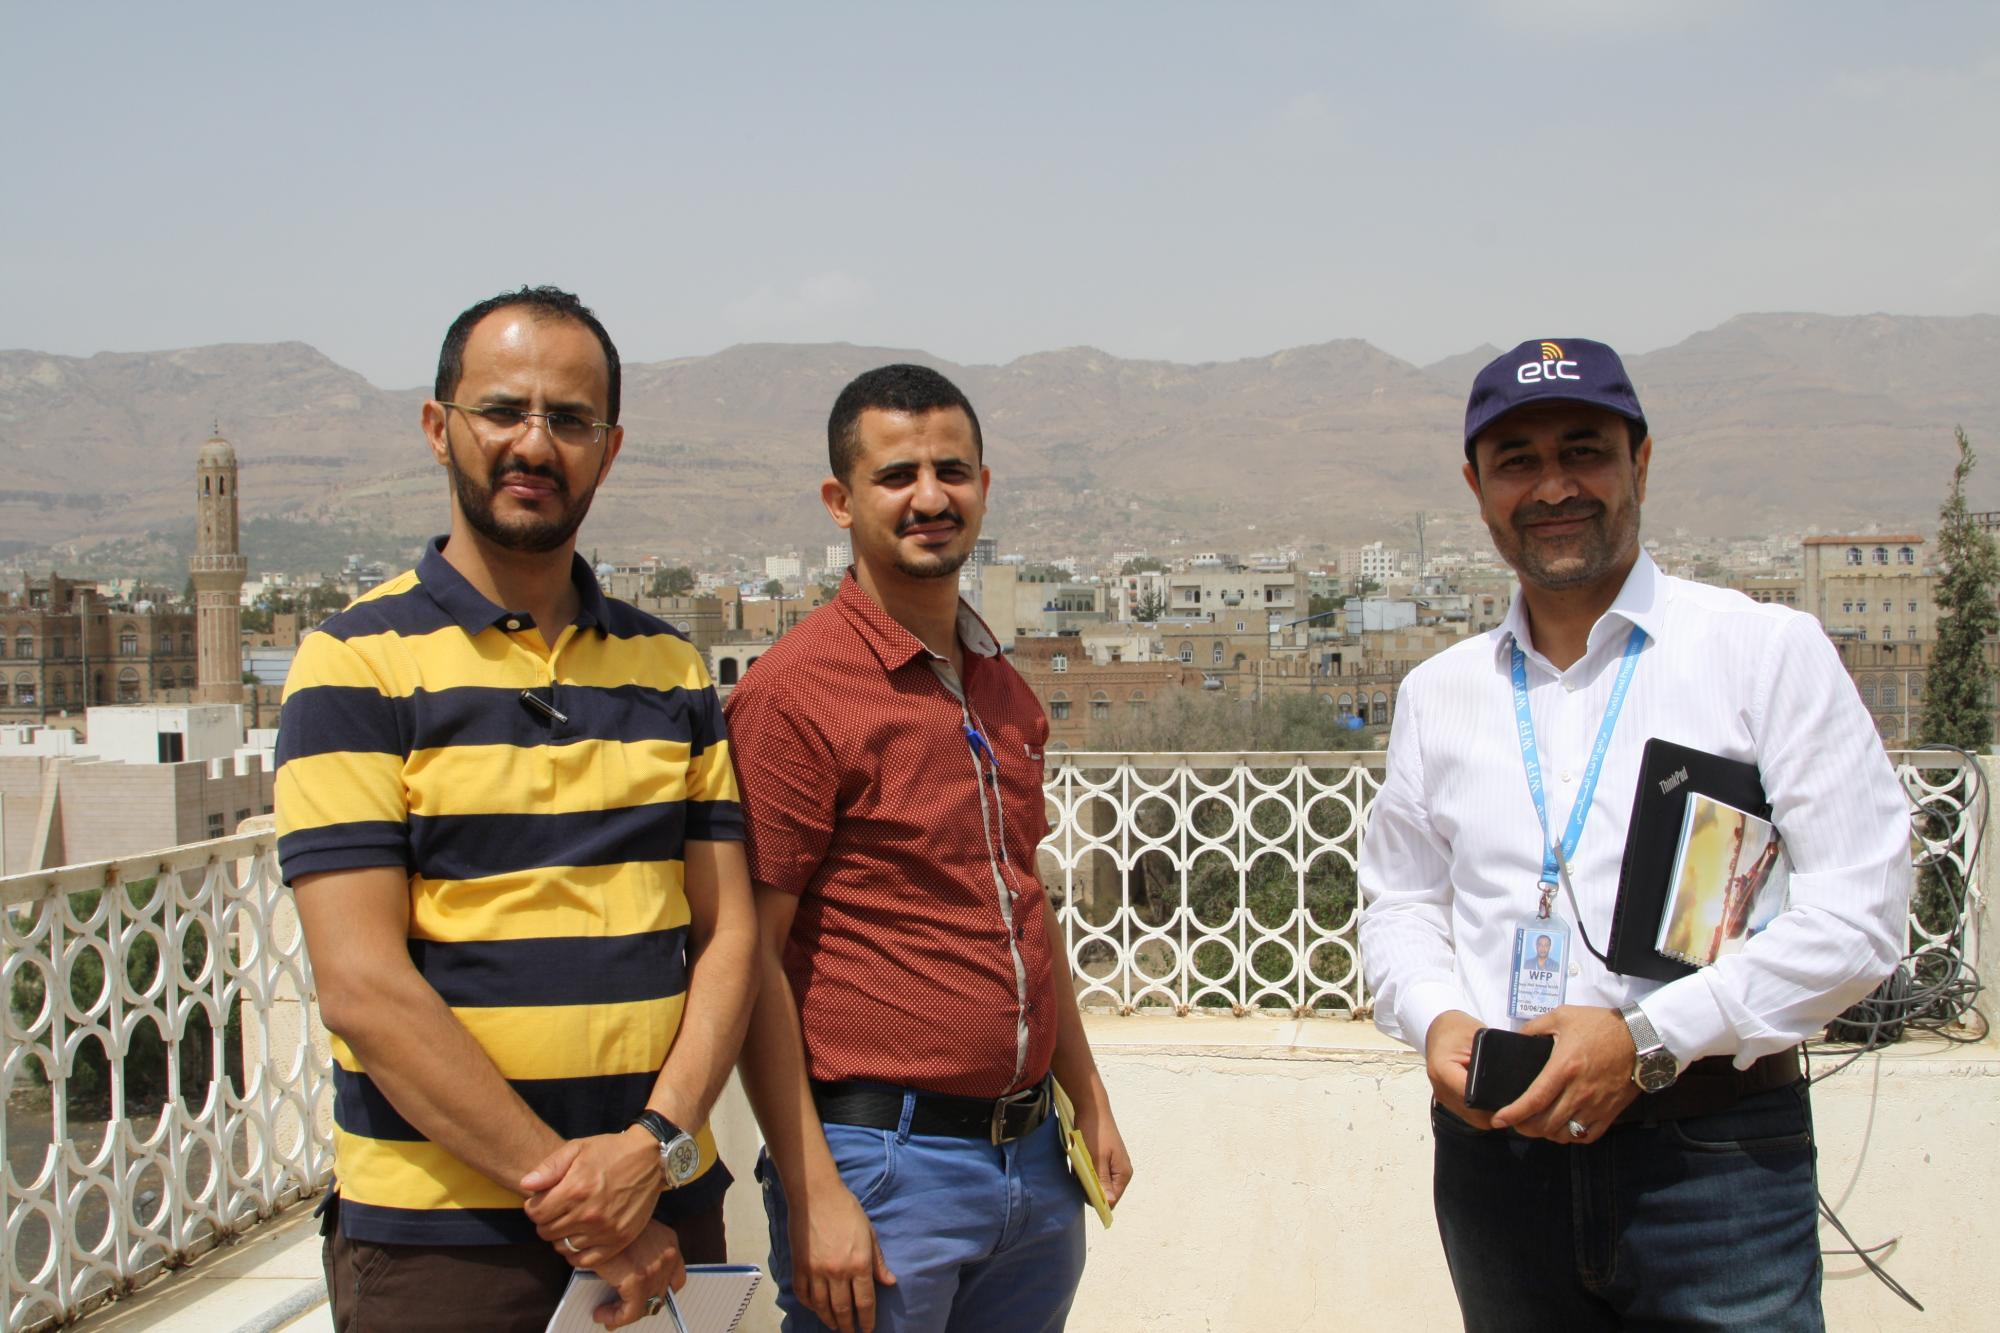 Visit to the ETC NGO hub in Sana'a, hosted by ACF